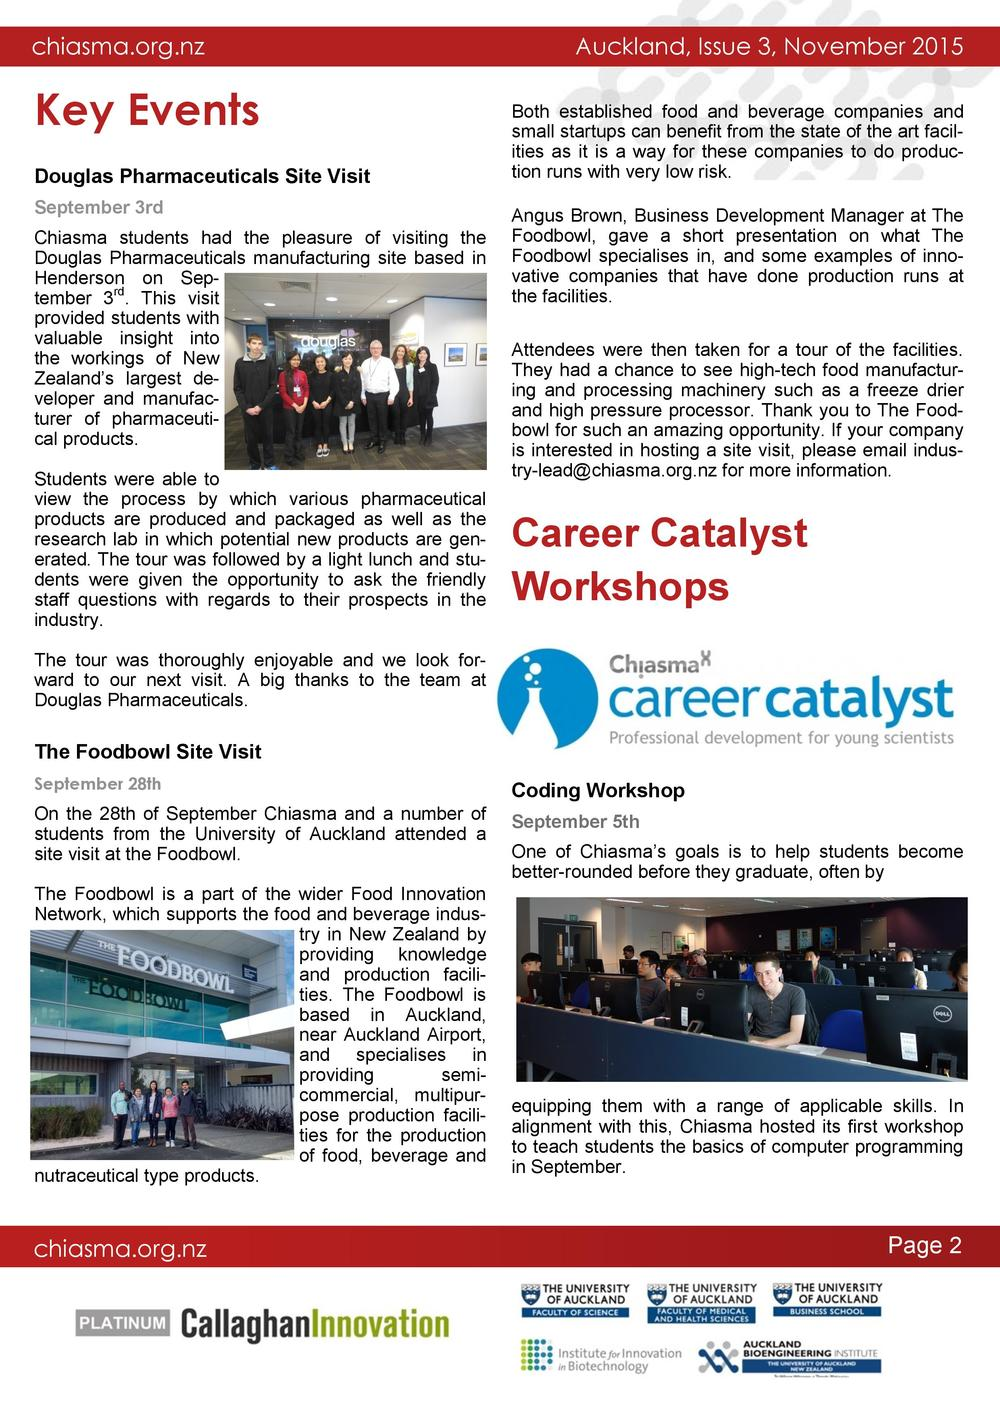 Industry Newsletter 3 2015 draft 1-page-002.jpg